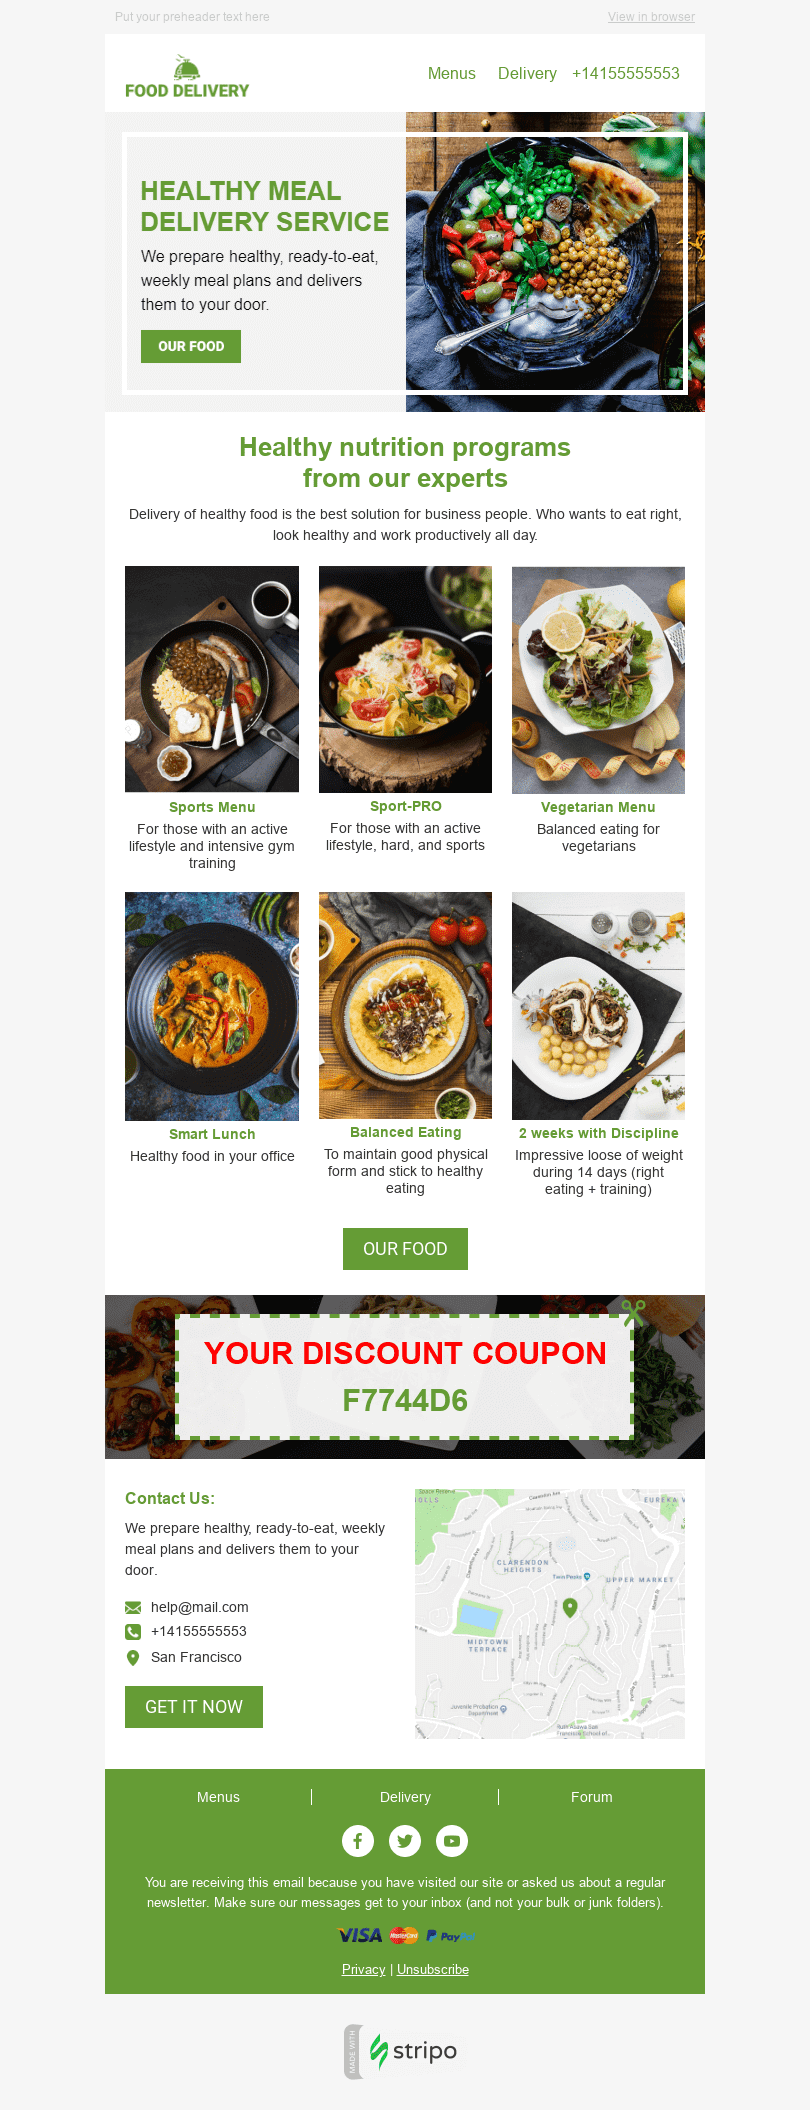 78294-Stripo-Food-Promo-newsletter-Eating-at-home-email-web